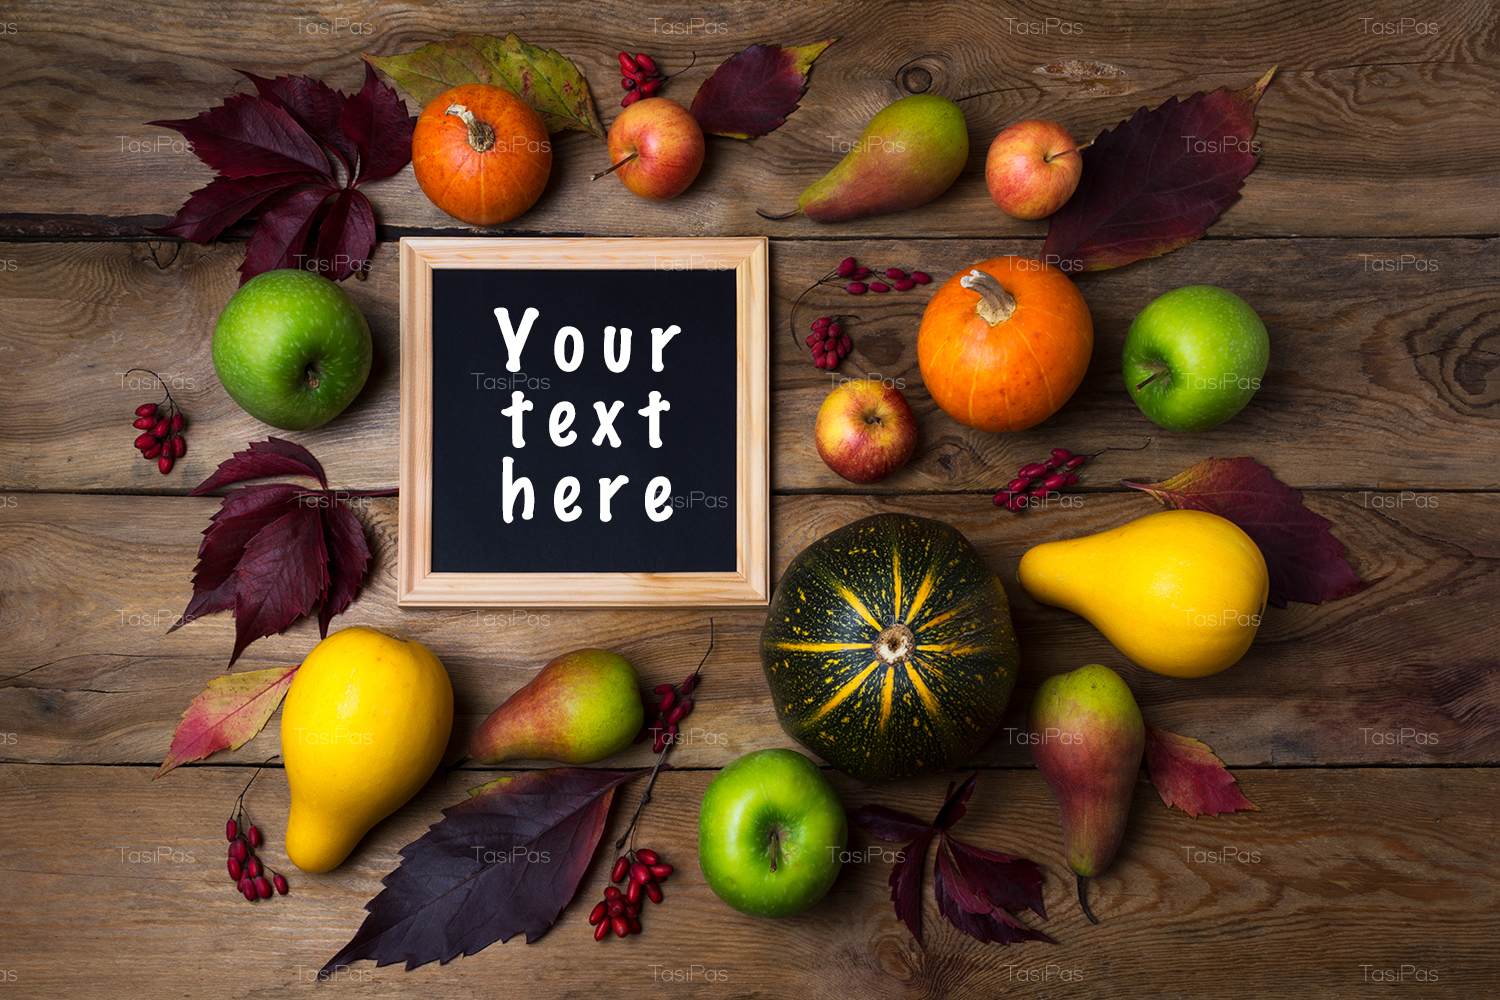 Rustic square frame mockup with pumpkins, pears example image 3